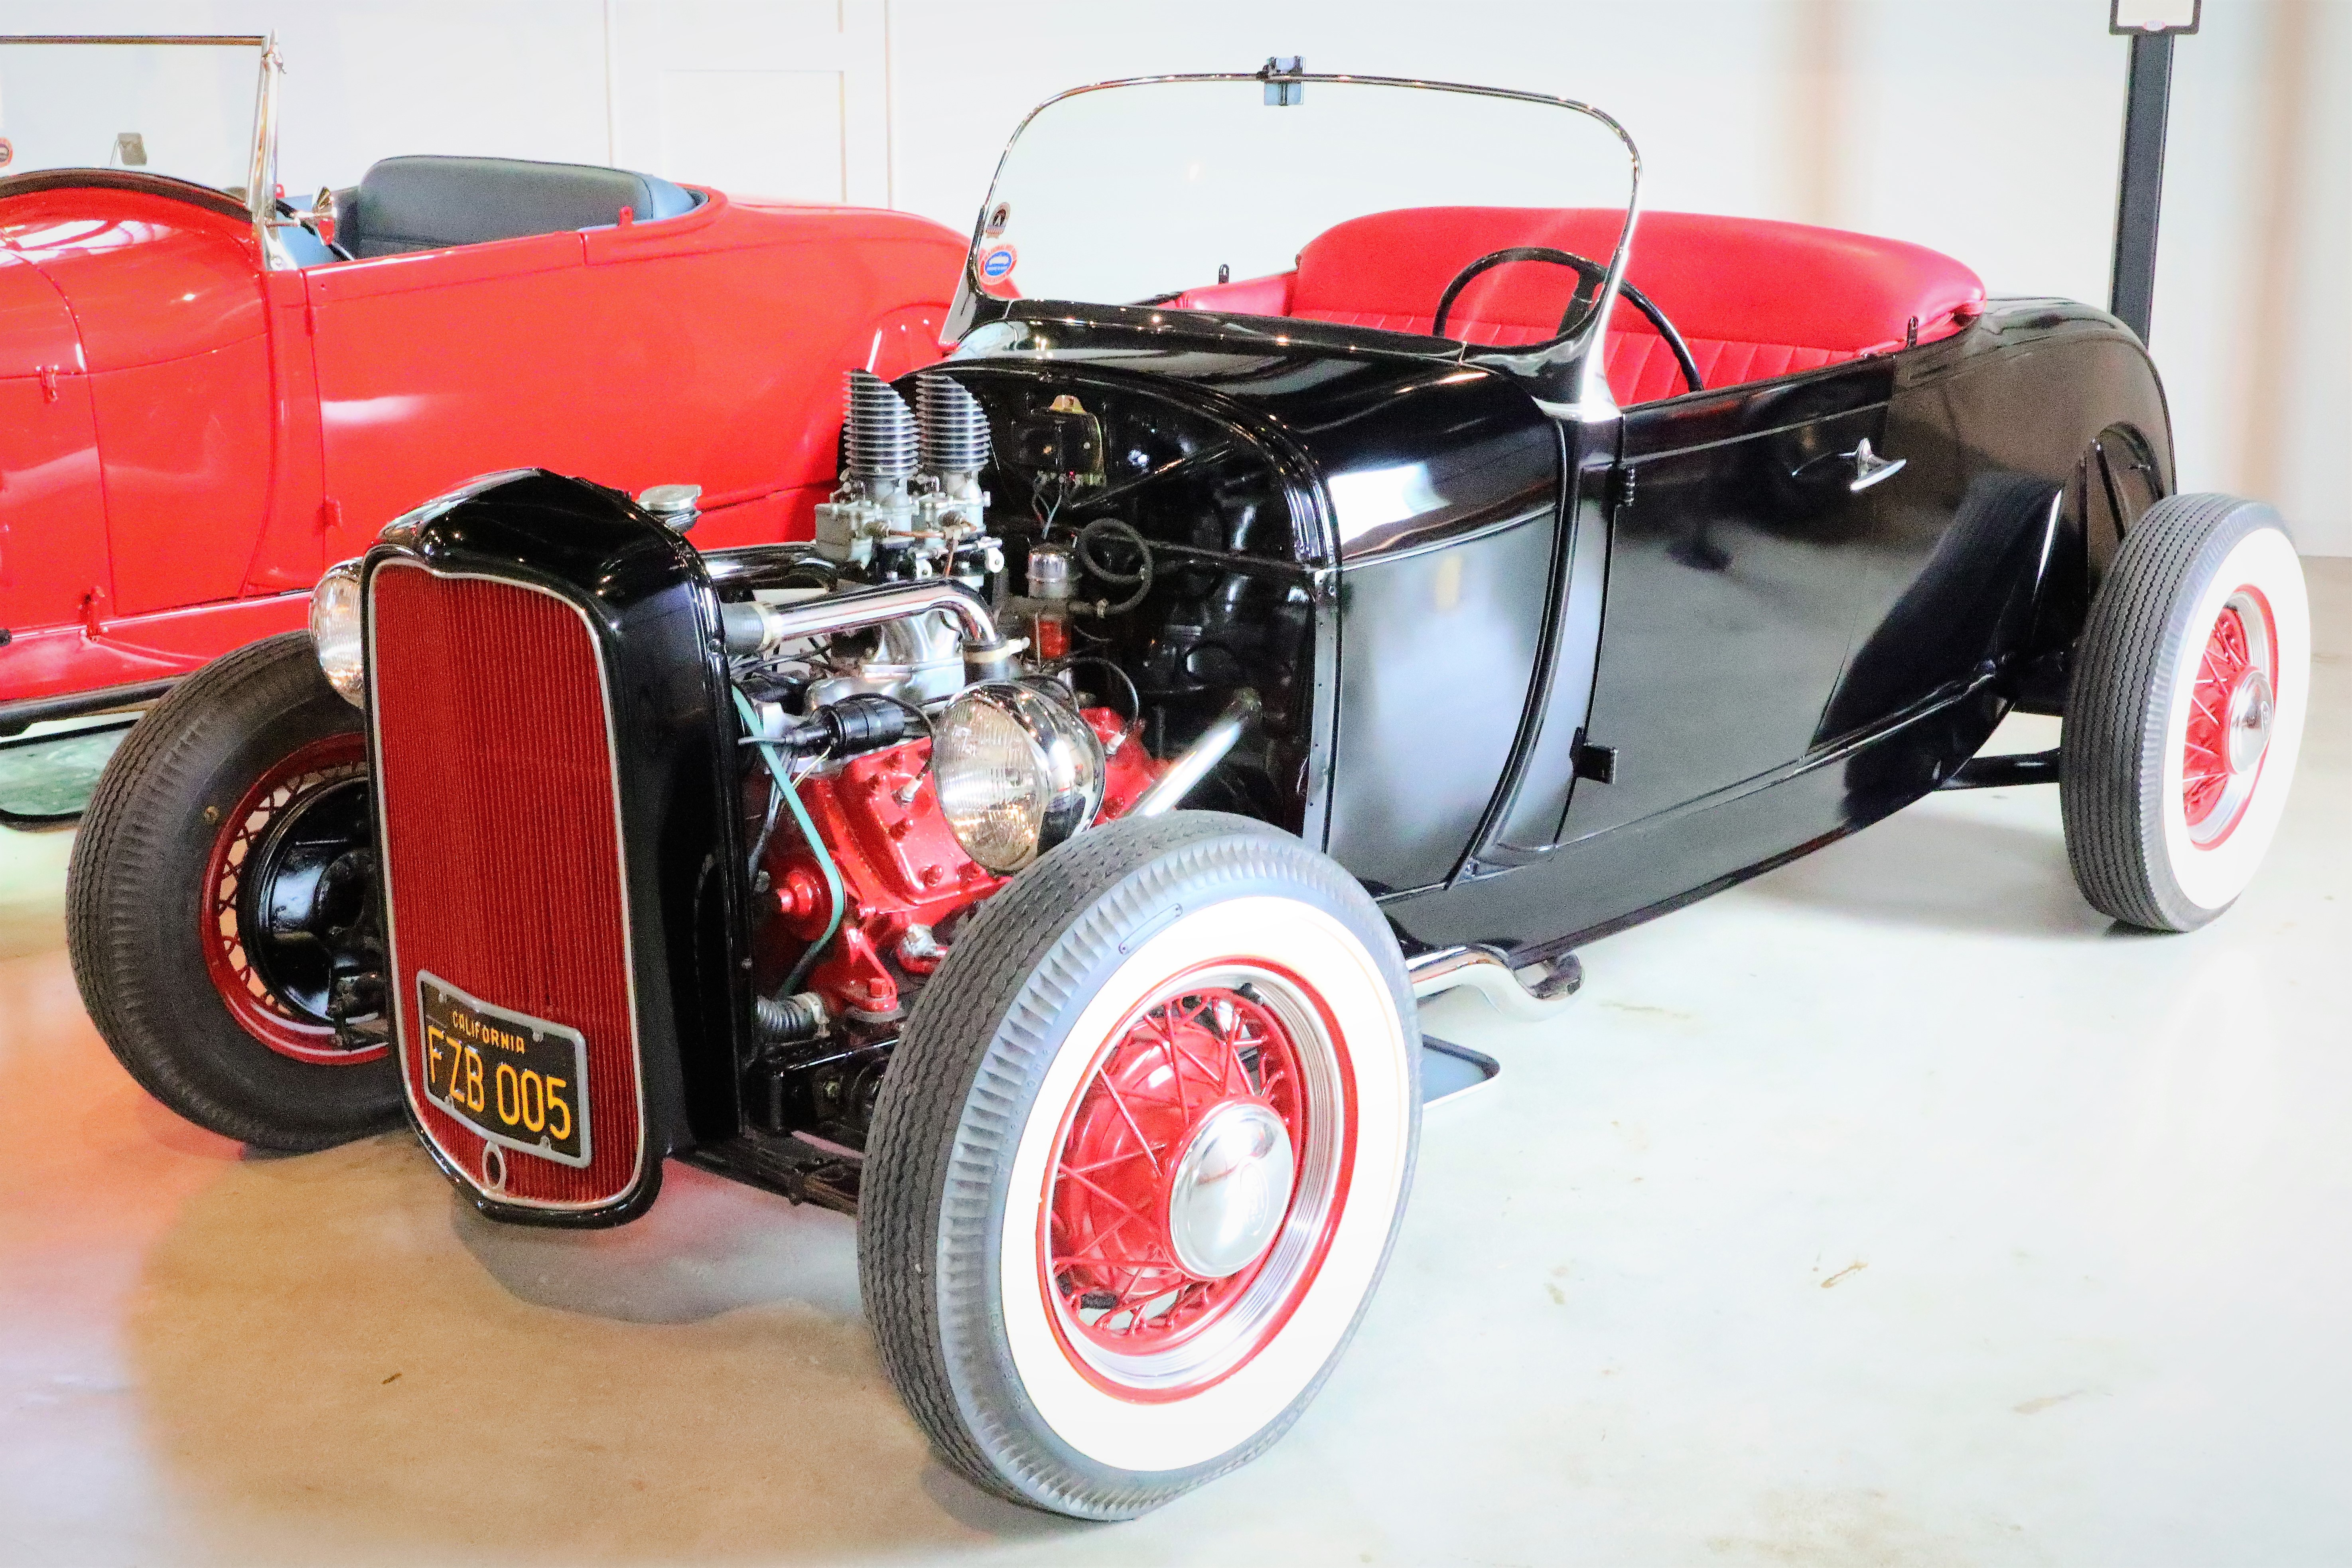 Early hot rod driven by Elvis Presley in 1957 film to be auctioned